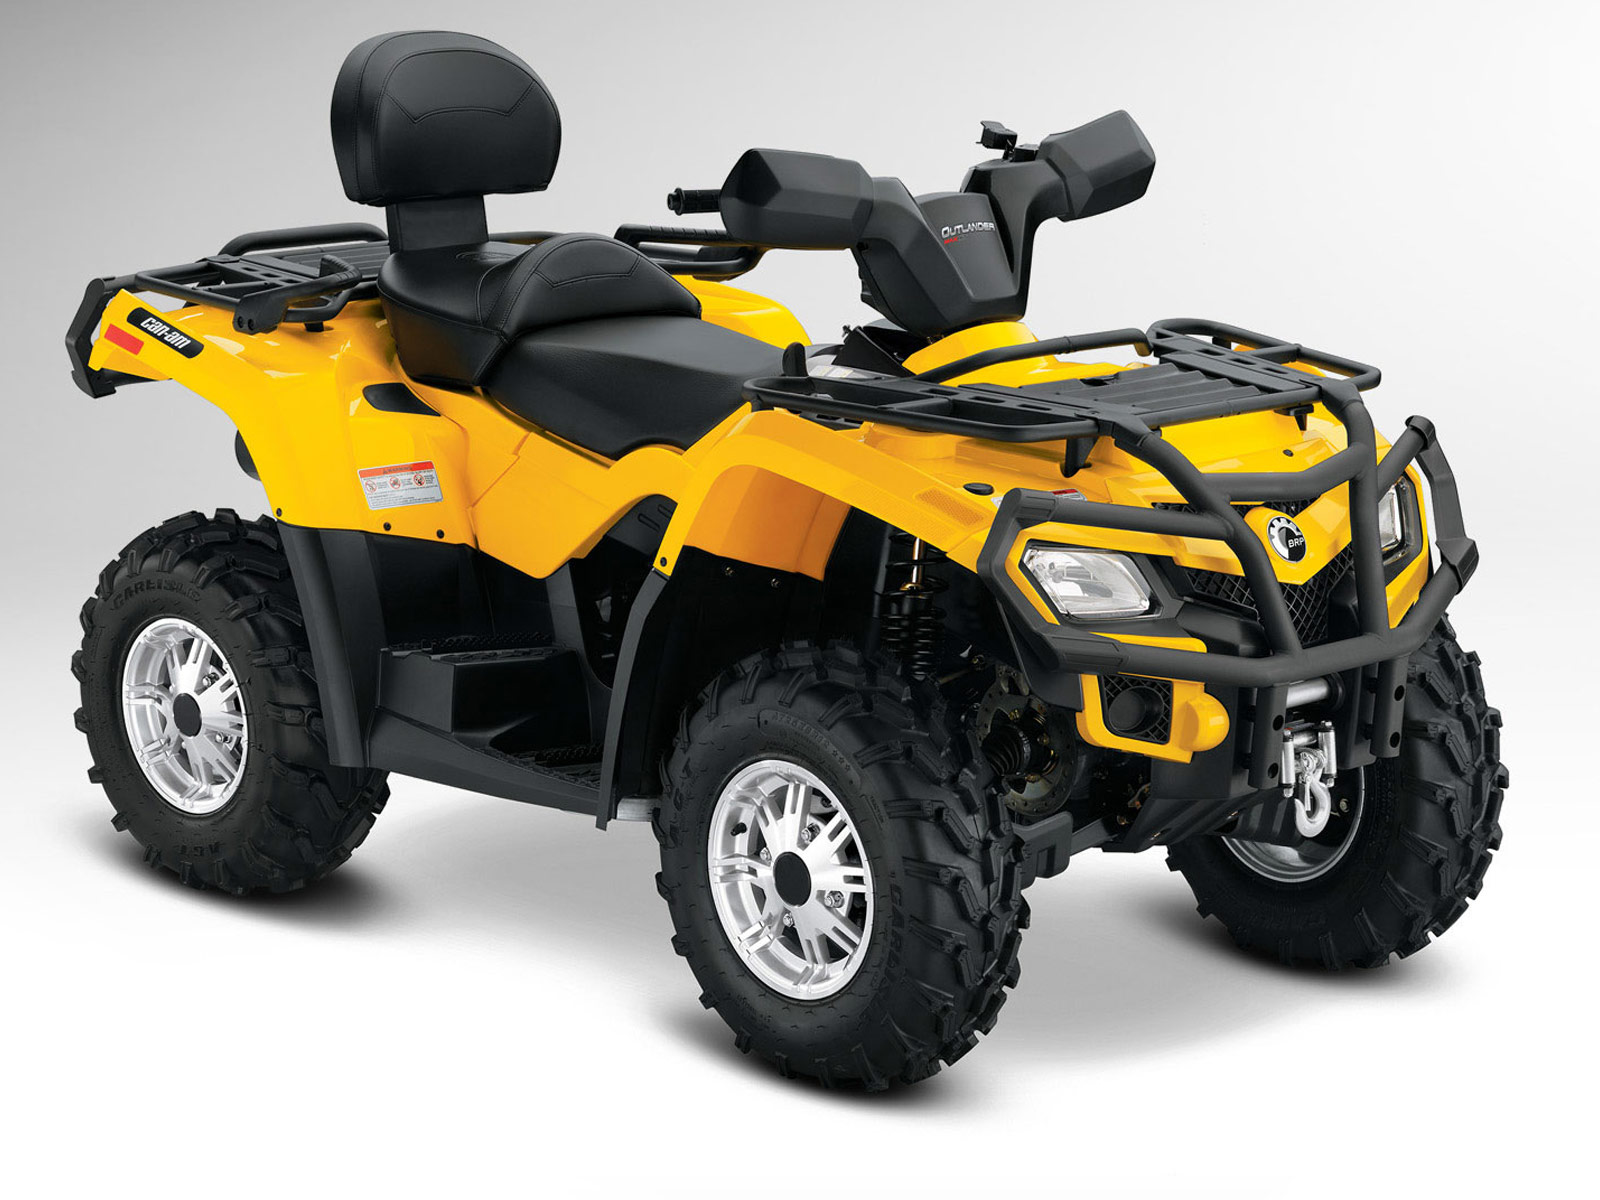 medium resolution of max atv wiring diagram wiring librarycan am atv pictures 2012 outlander max400xt rh atv pictures blogspot